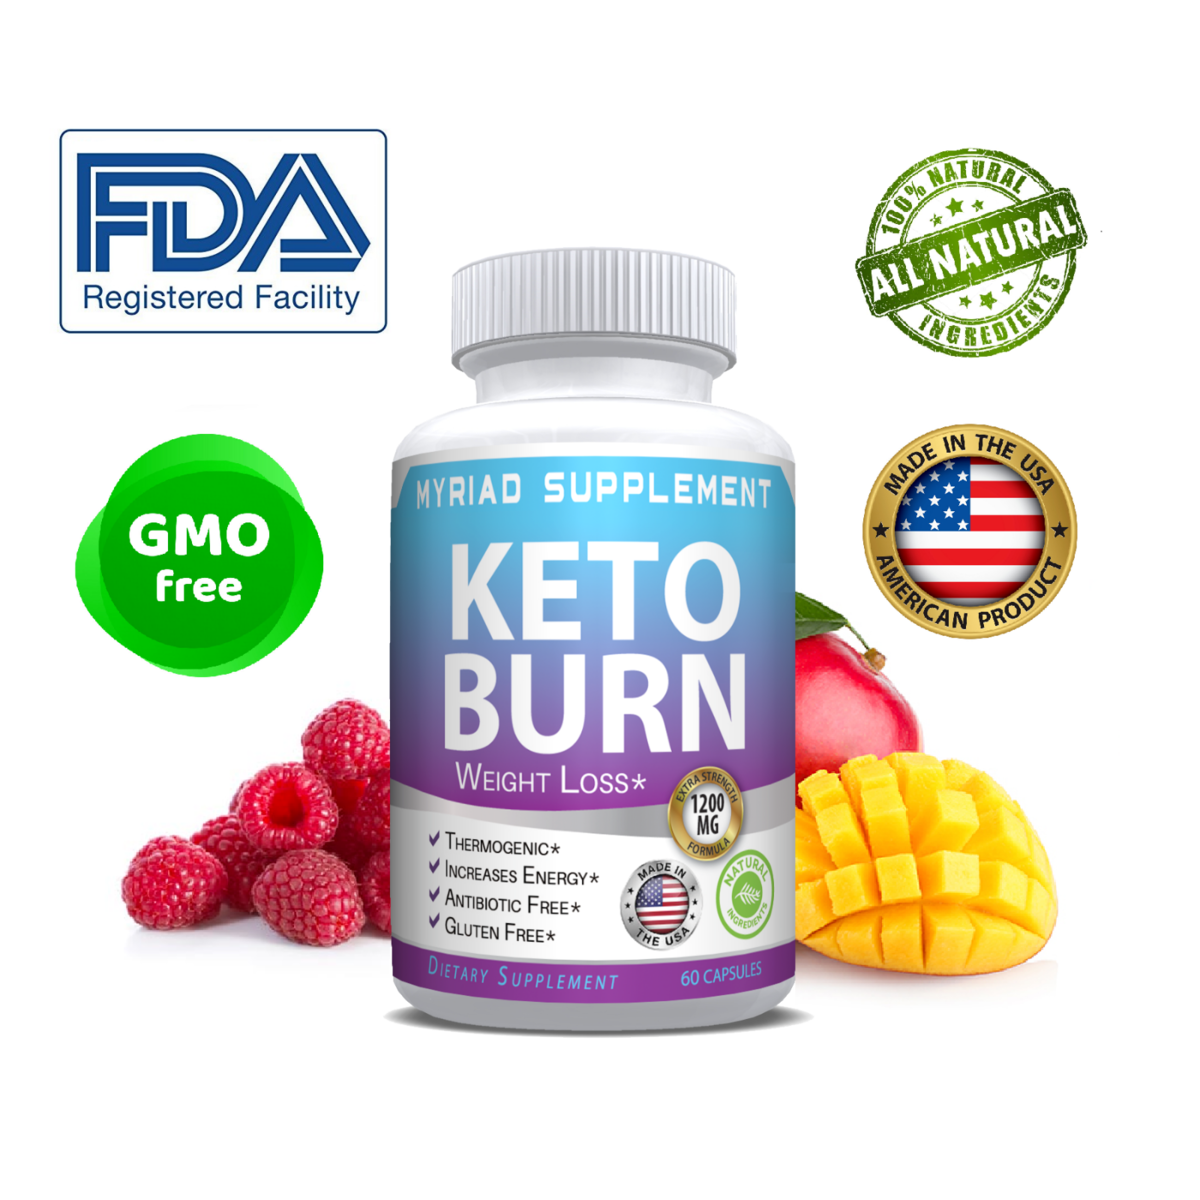 Keto BURN Diet Pills 1200 MG Ketosis Weight Loss Supplements To Burn Fat & Carb